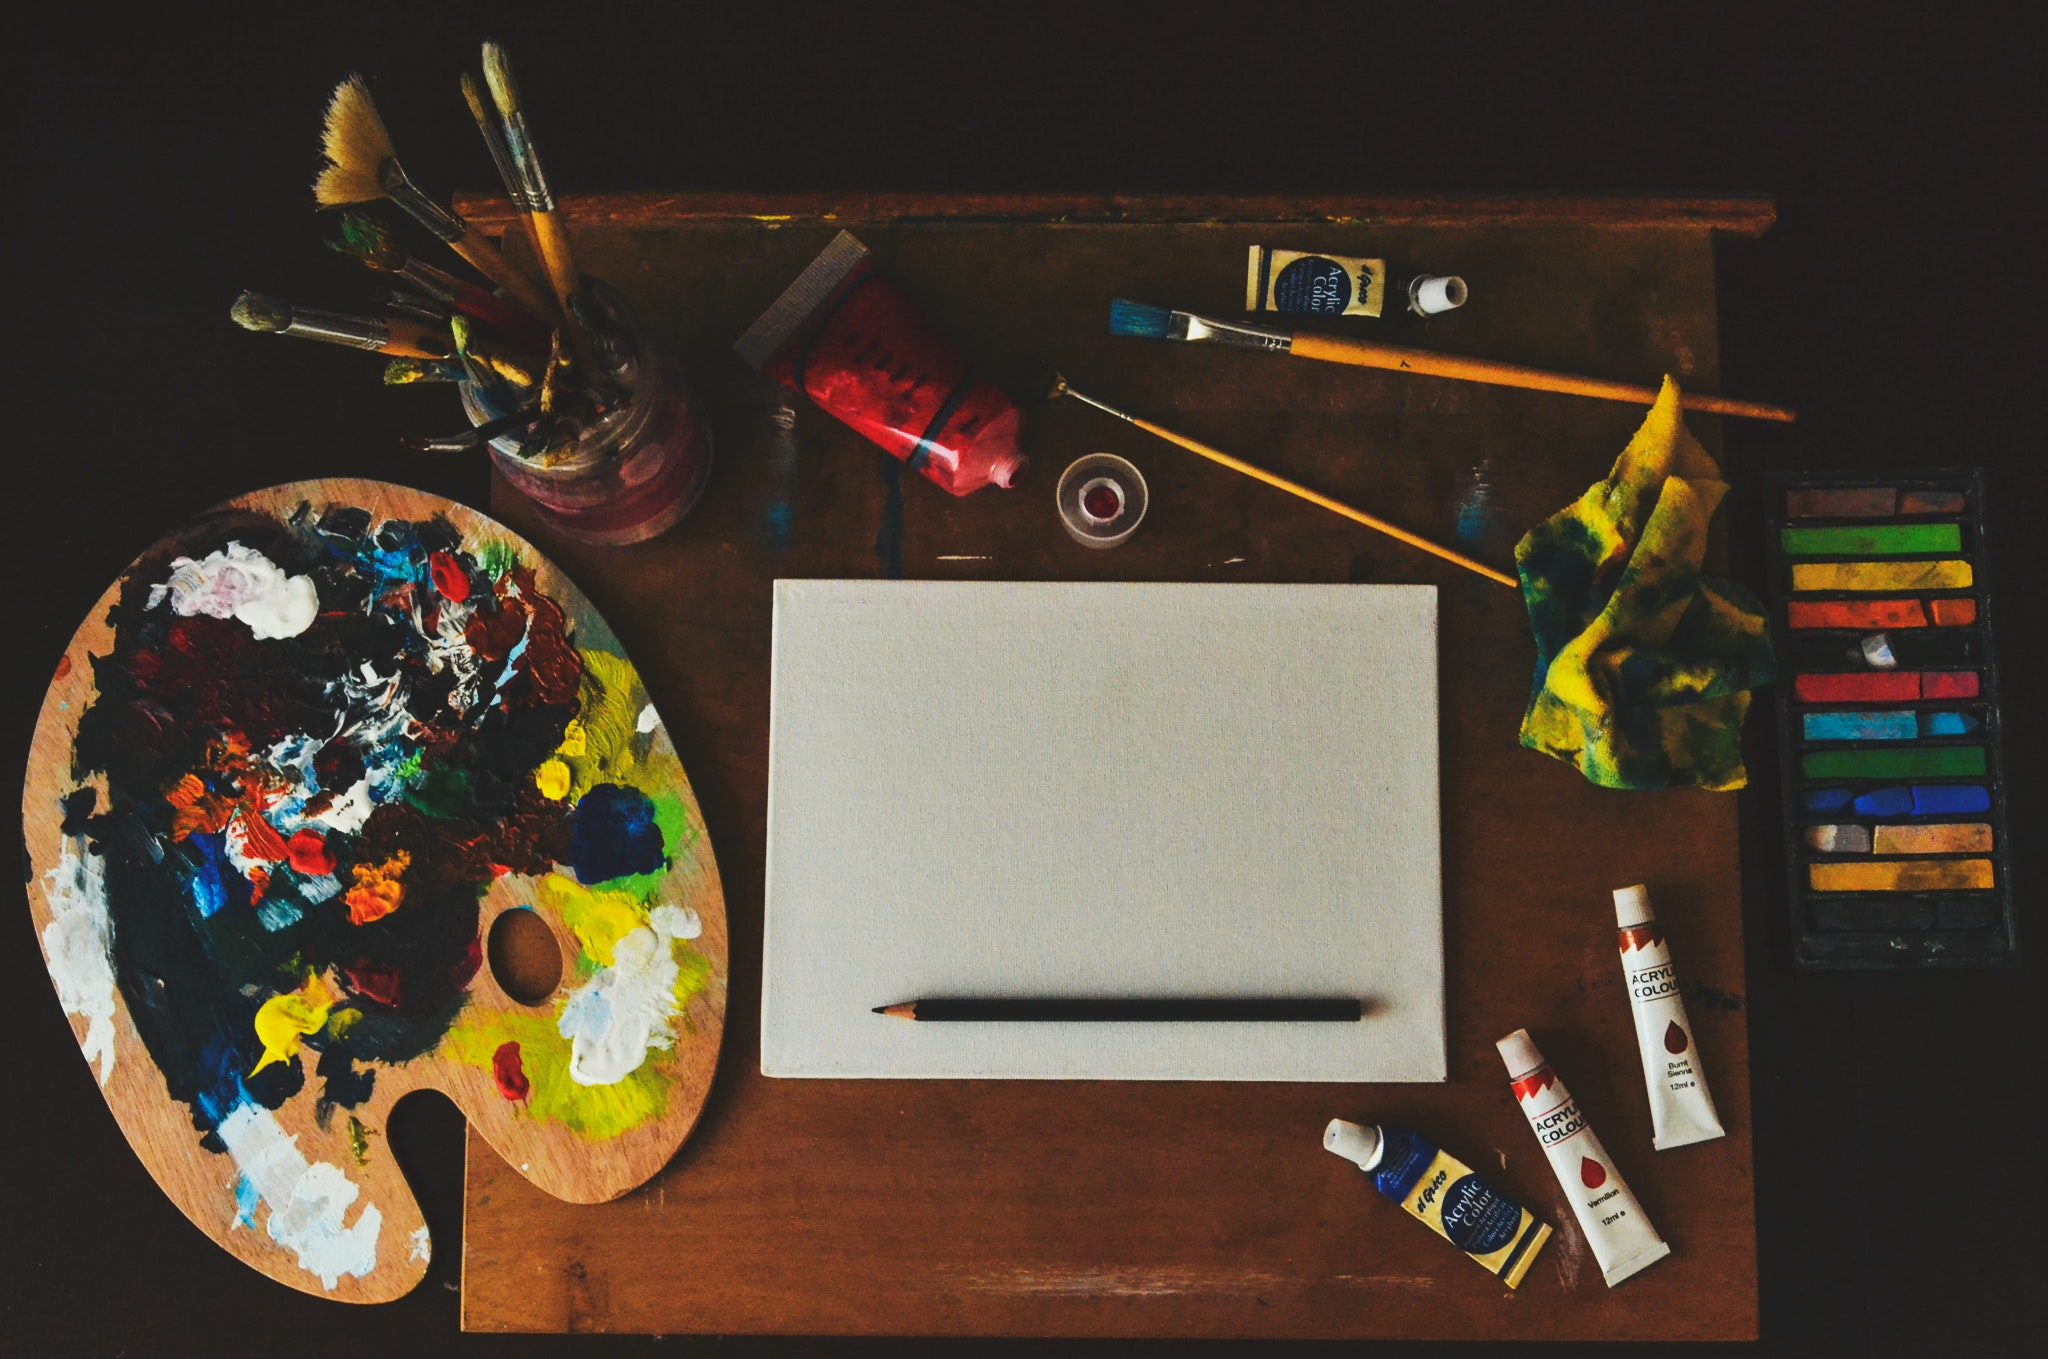 TOOLS & RESOURCES I USE -